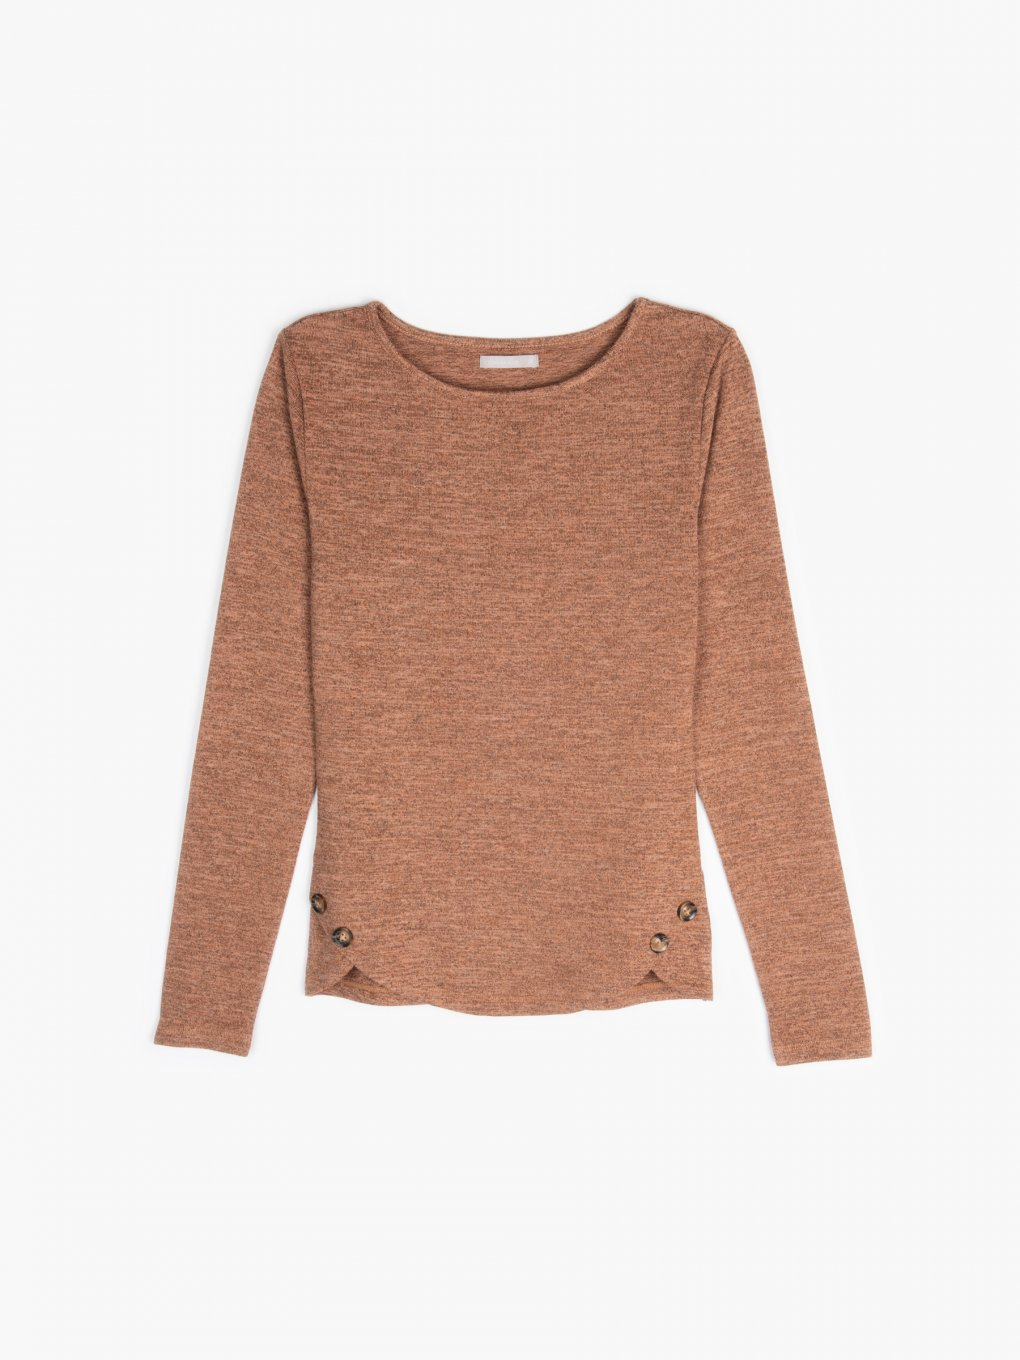 Fine knit top with buttons